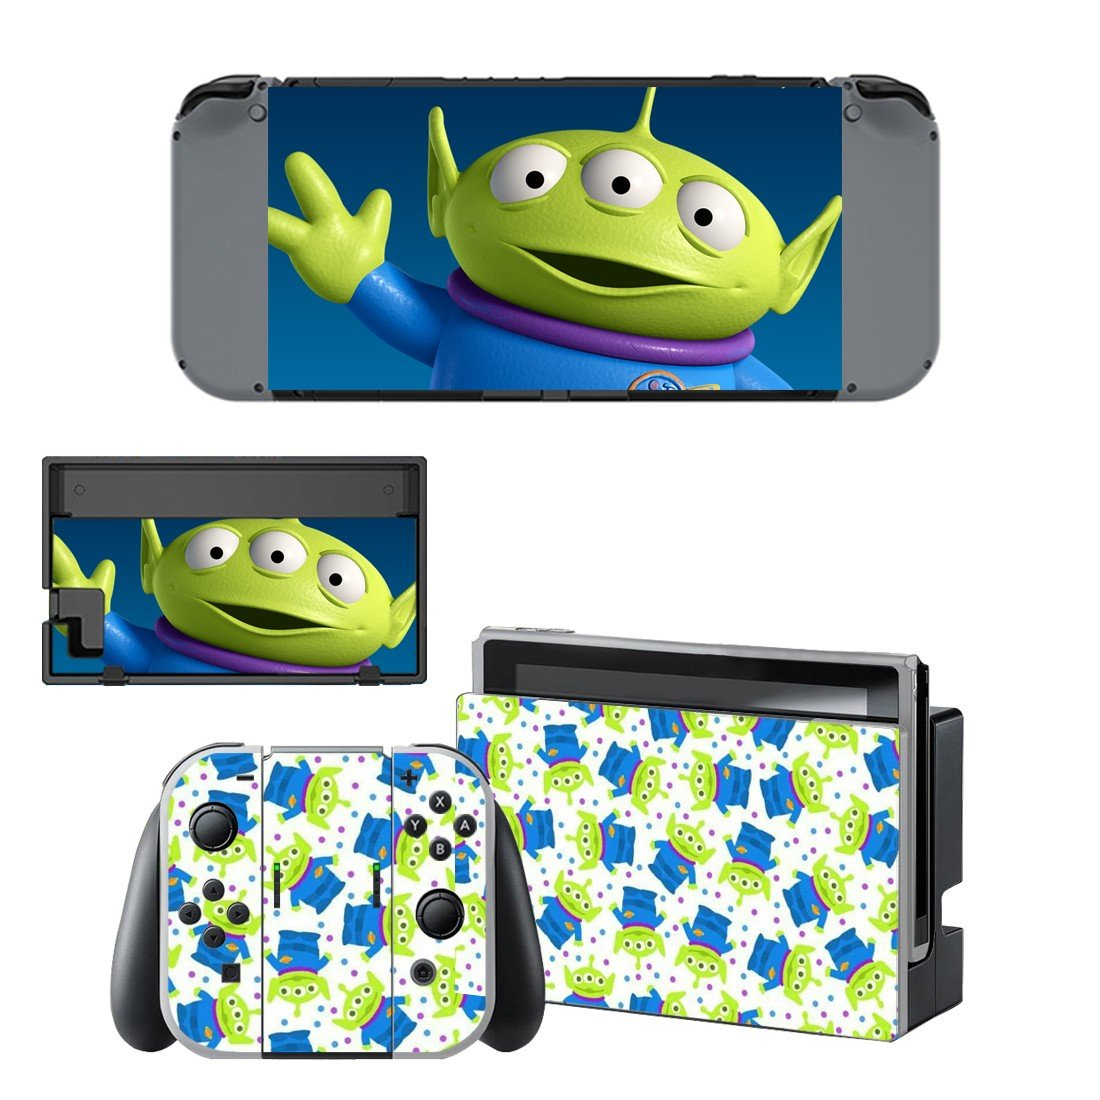 Toy story 3 aliens decal for Nintendo switch console sticker skin